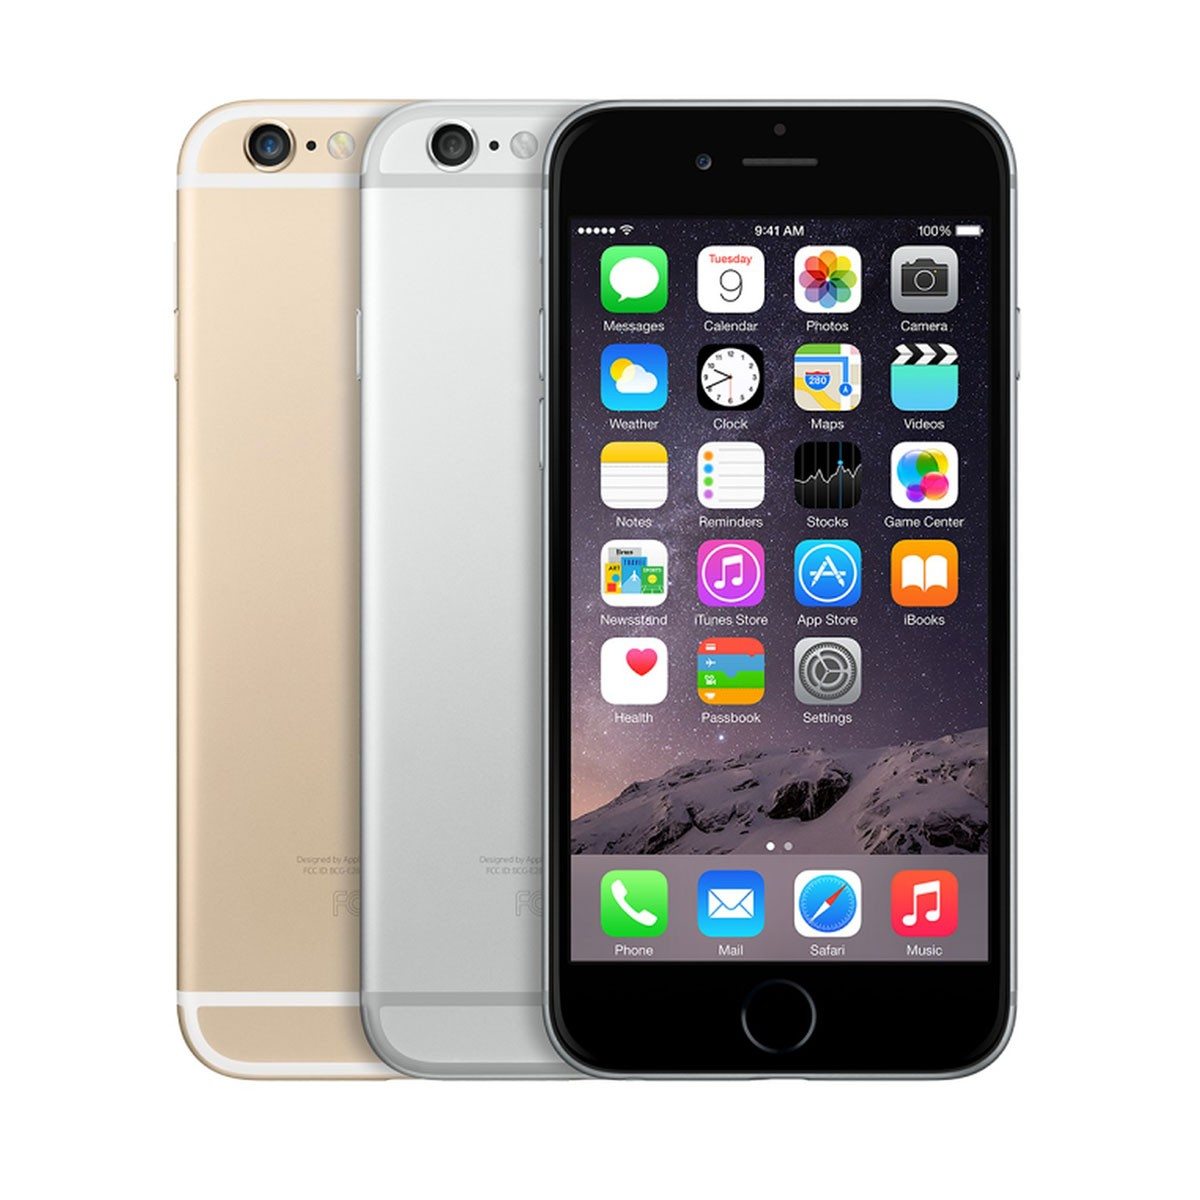 Apple iPhone 6 16Gb Space Grey/Gold/Silver (Refurbished)